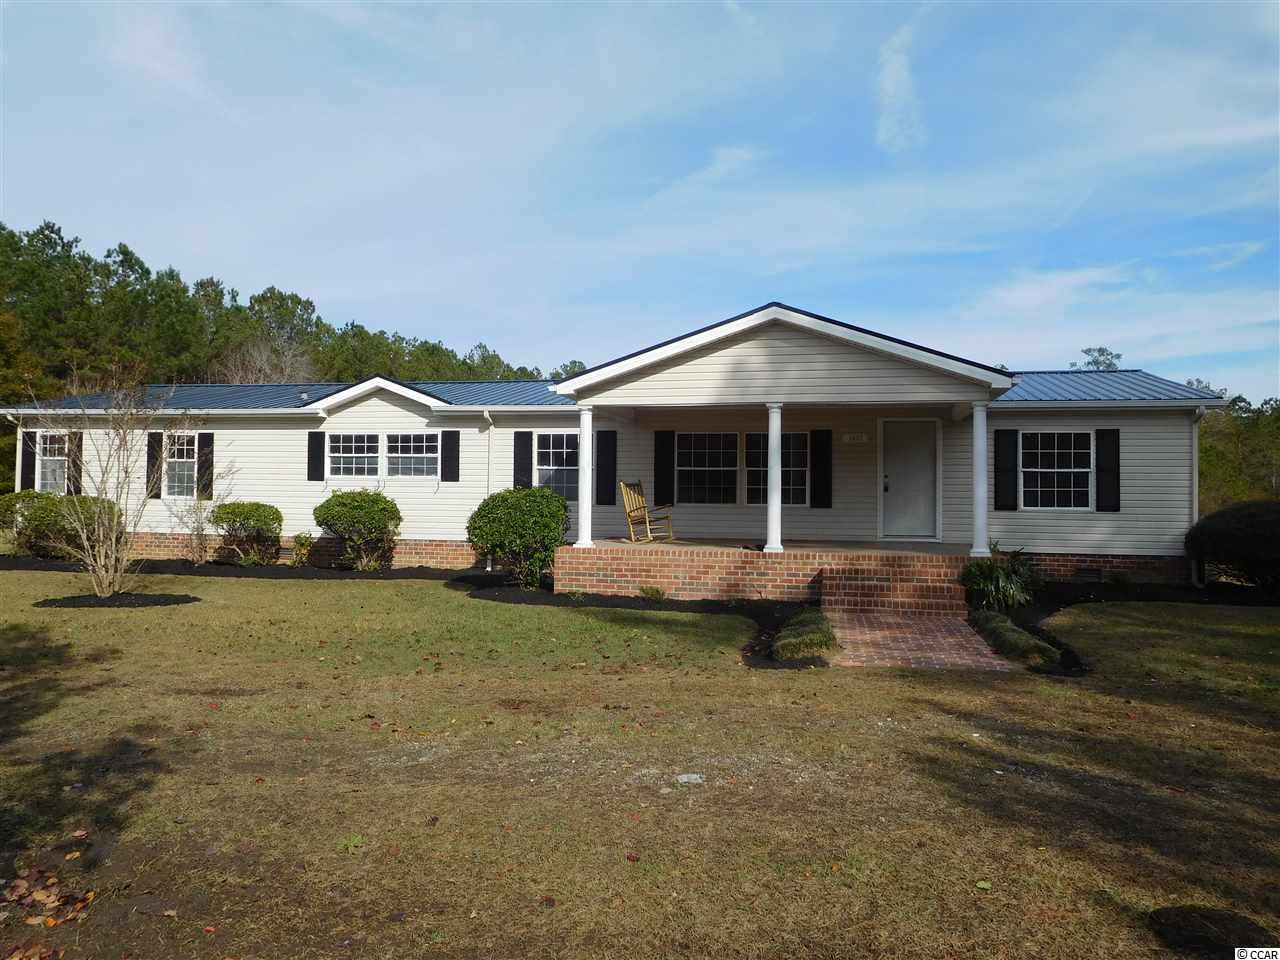 This is a very special property that must be seen to truly appreciate. It features over 6 acres and sits on a beautiful private lake. Enjoy all of this, being away from it all and  just 10 minutes to Cherry Grove Beach . Completely updated throughout. There are  5 bedrooms, one of which is a nursery attached to the master suite. It offers 3 full baths and a separate laundry room. The updates include granite countertops, stainless appliances in the kitchen, new flooring throughout, soaker tub in master bath along with separate tile shower . ALSO New metal roof ,NEW  windows, NEW  water heater    and  NEW AC unit just installed.  Large storage shed on property.  Single wide trailer  on property which needs remodel.       All measurements are not guaranteed, buyer is responsible to confirm accuracy. A Licensed Realtor has an ownership stake in this property.